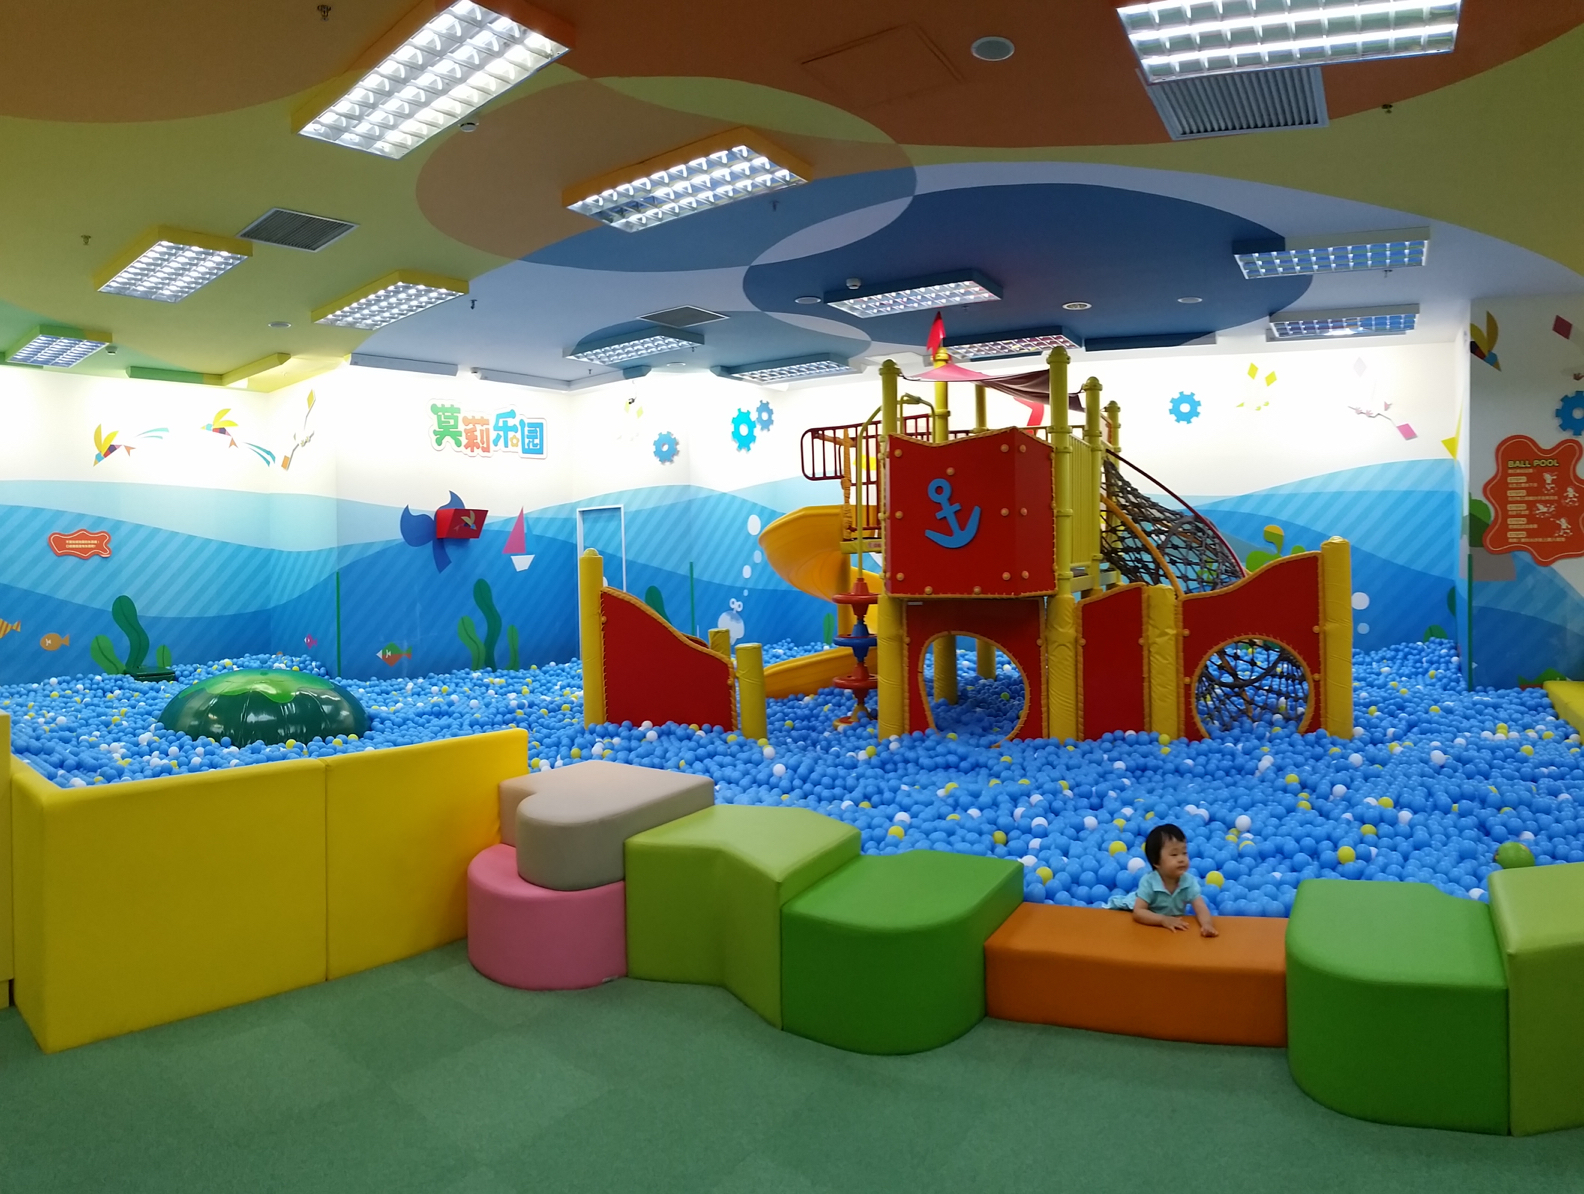 beijing indoor playground